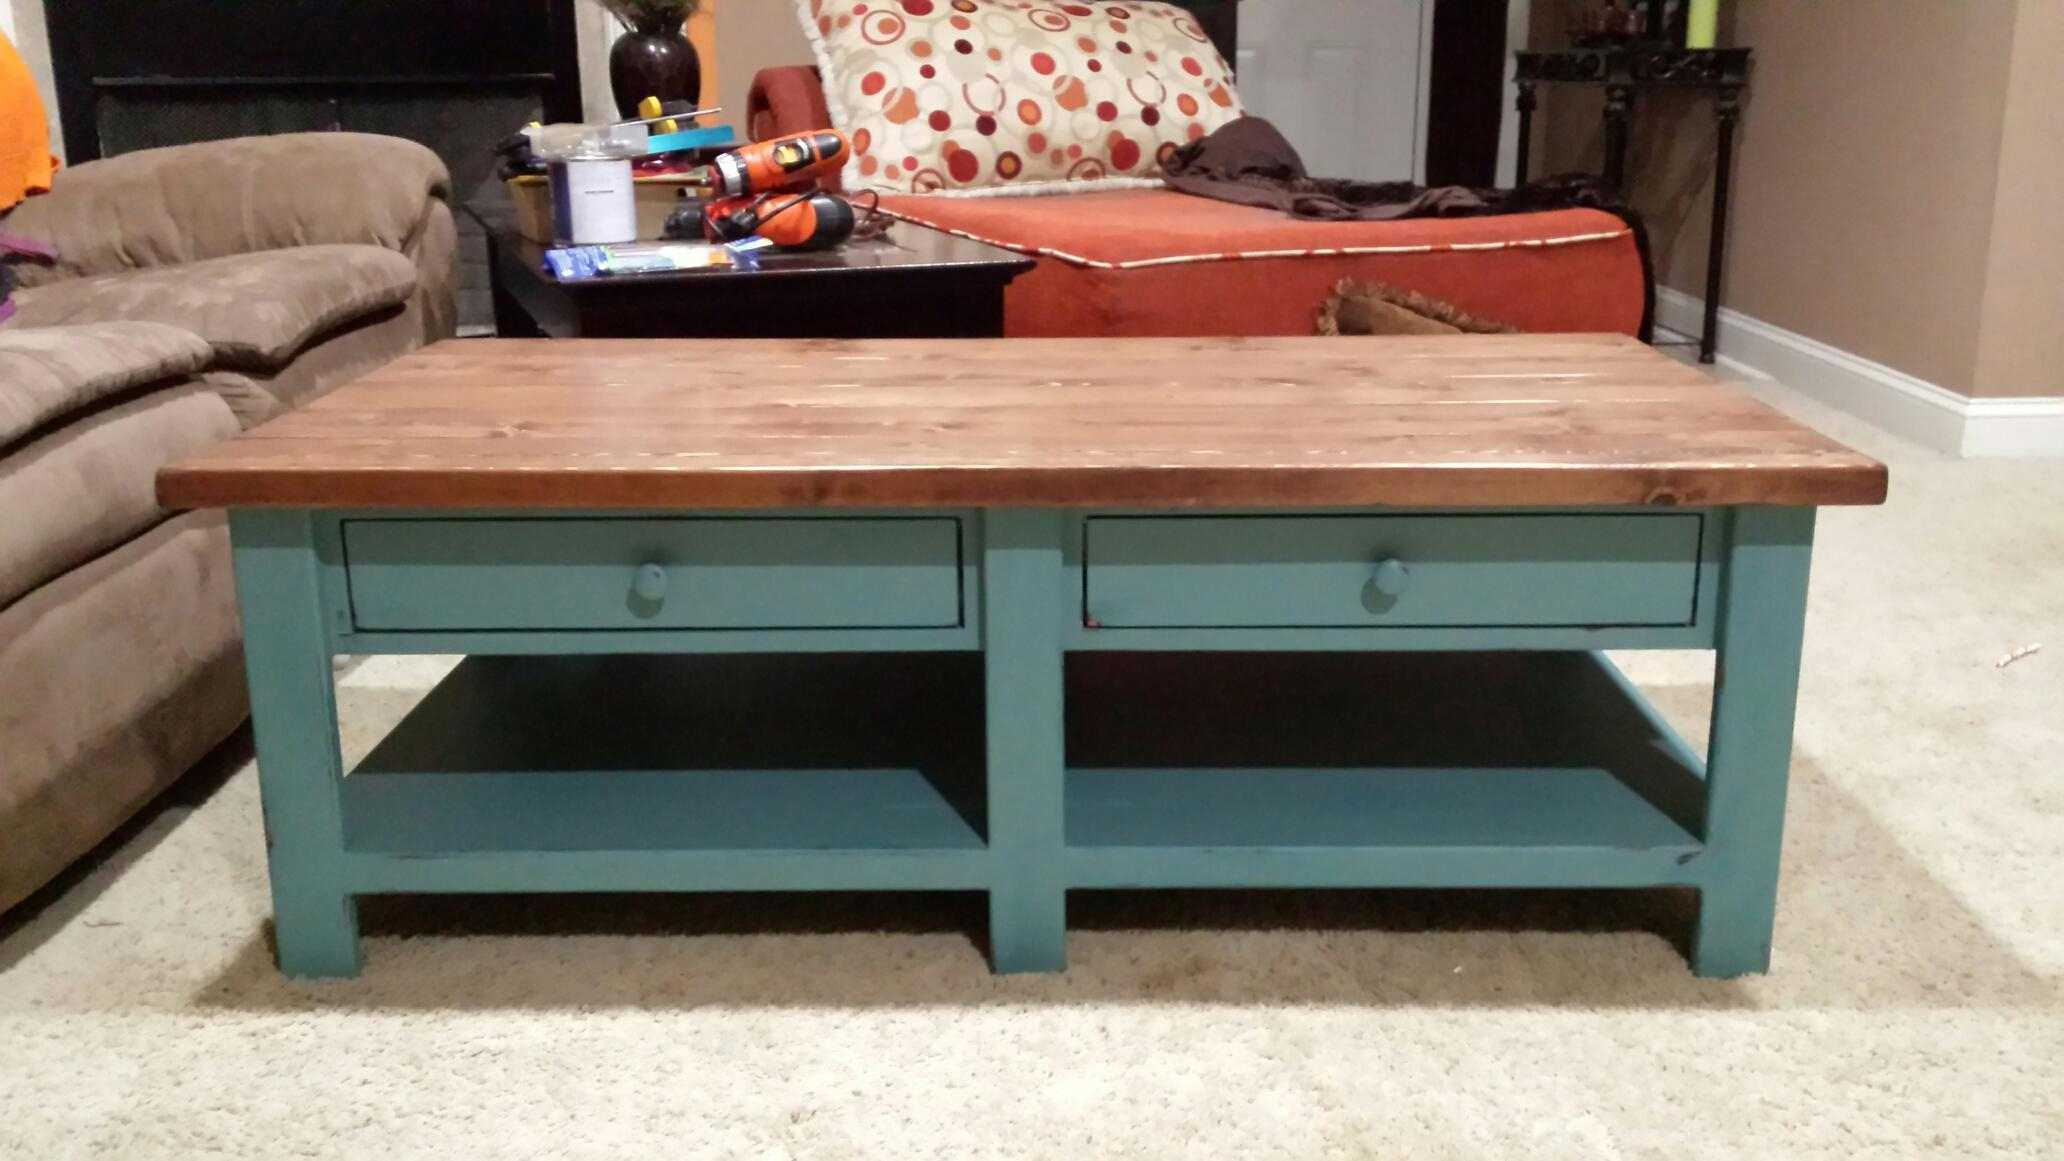 A Coffee Table With Two Drawers And Lower Bench